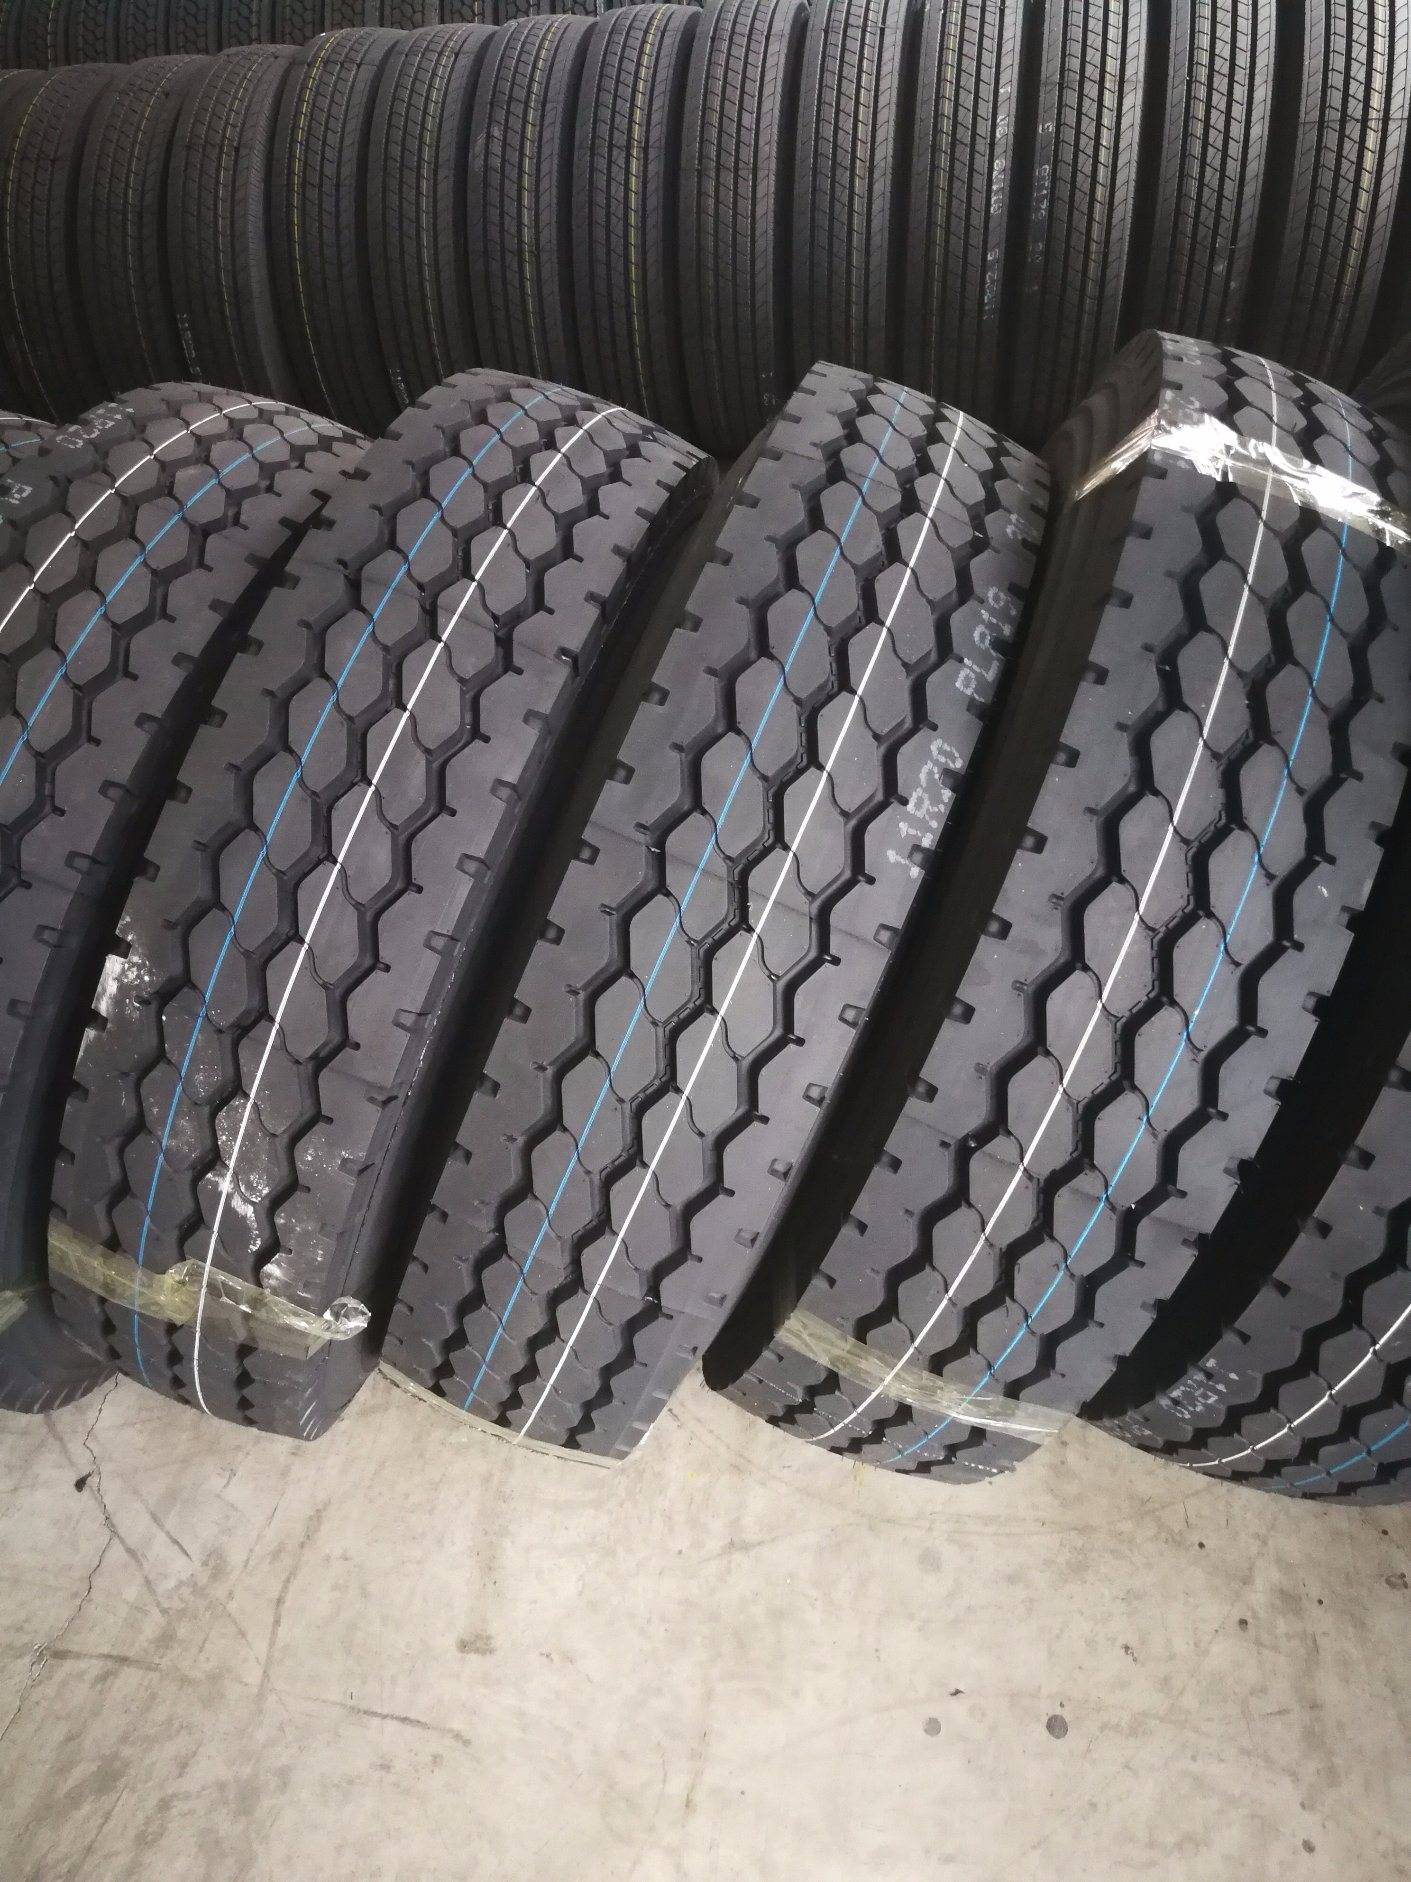 Used 11r22 5 Truck Tires For Sale : 11r22, truck, tires, Truck, 315/80r22.5, 11r22.5radial, Tire,, Company, Looking, Agent, Global, China, Radial, Heavy, Made-in-China.com